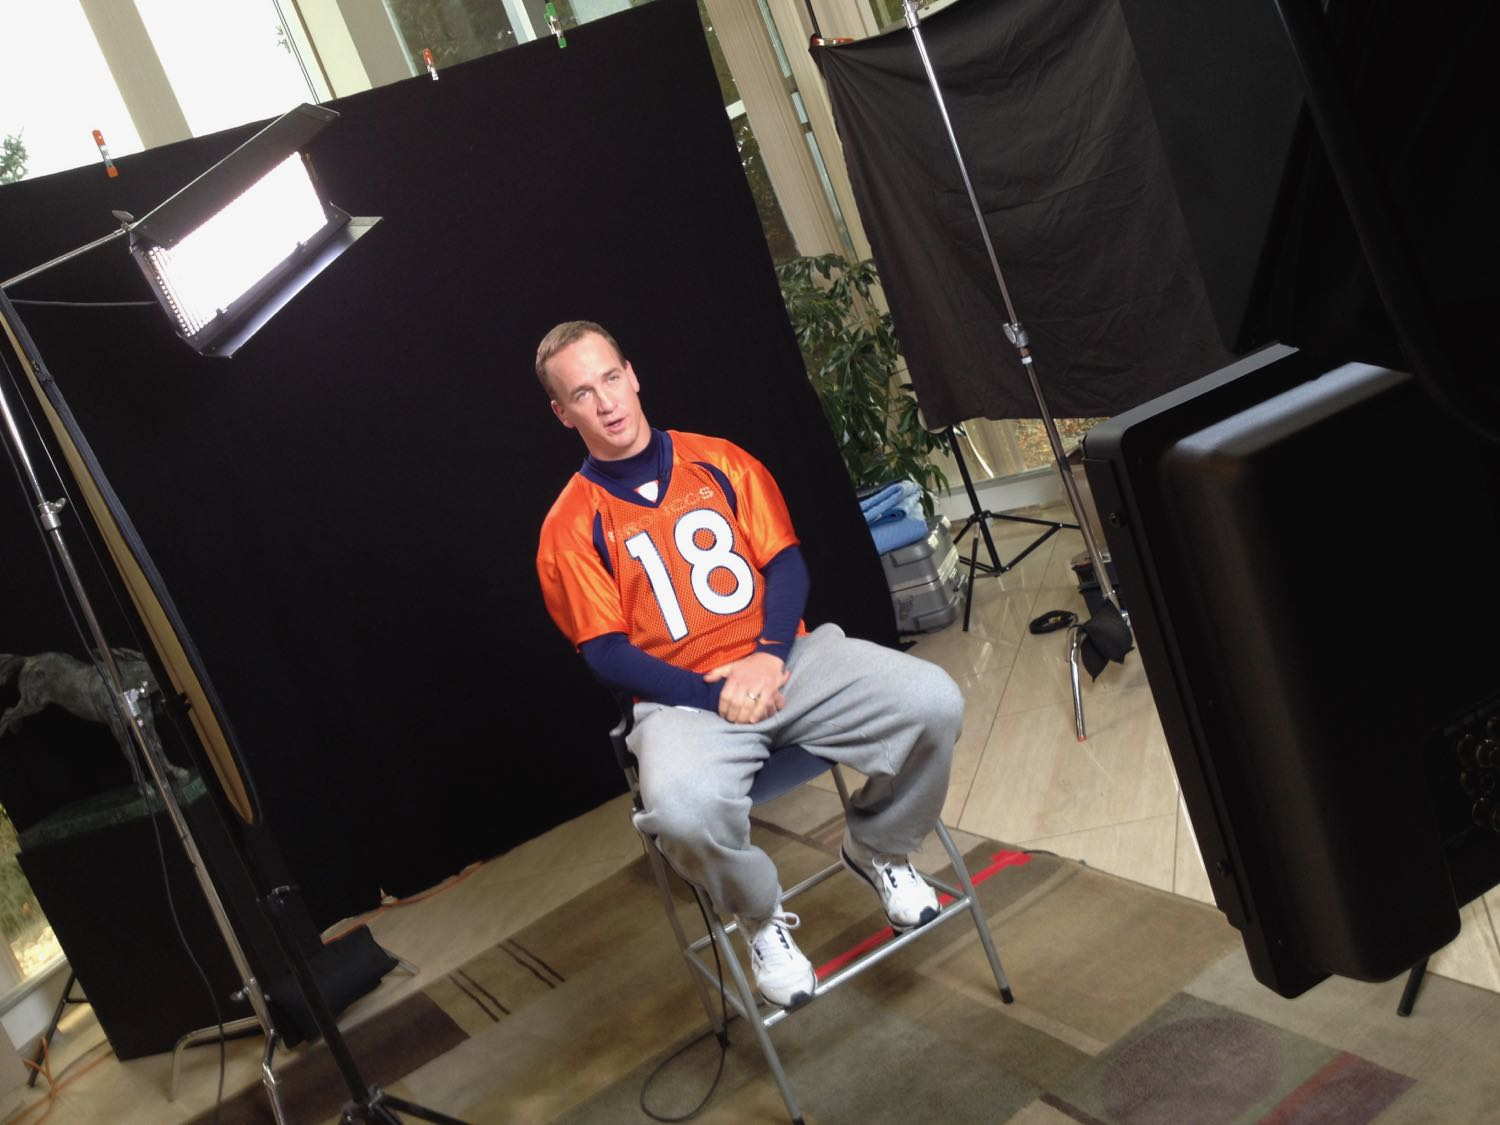 Peyton Manning is interviewed by Will Ferrell playing Ron Burgundy